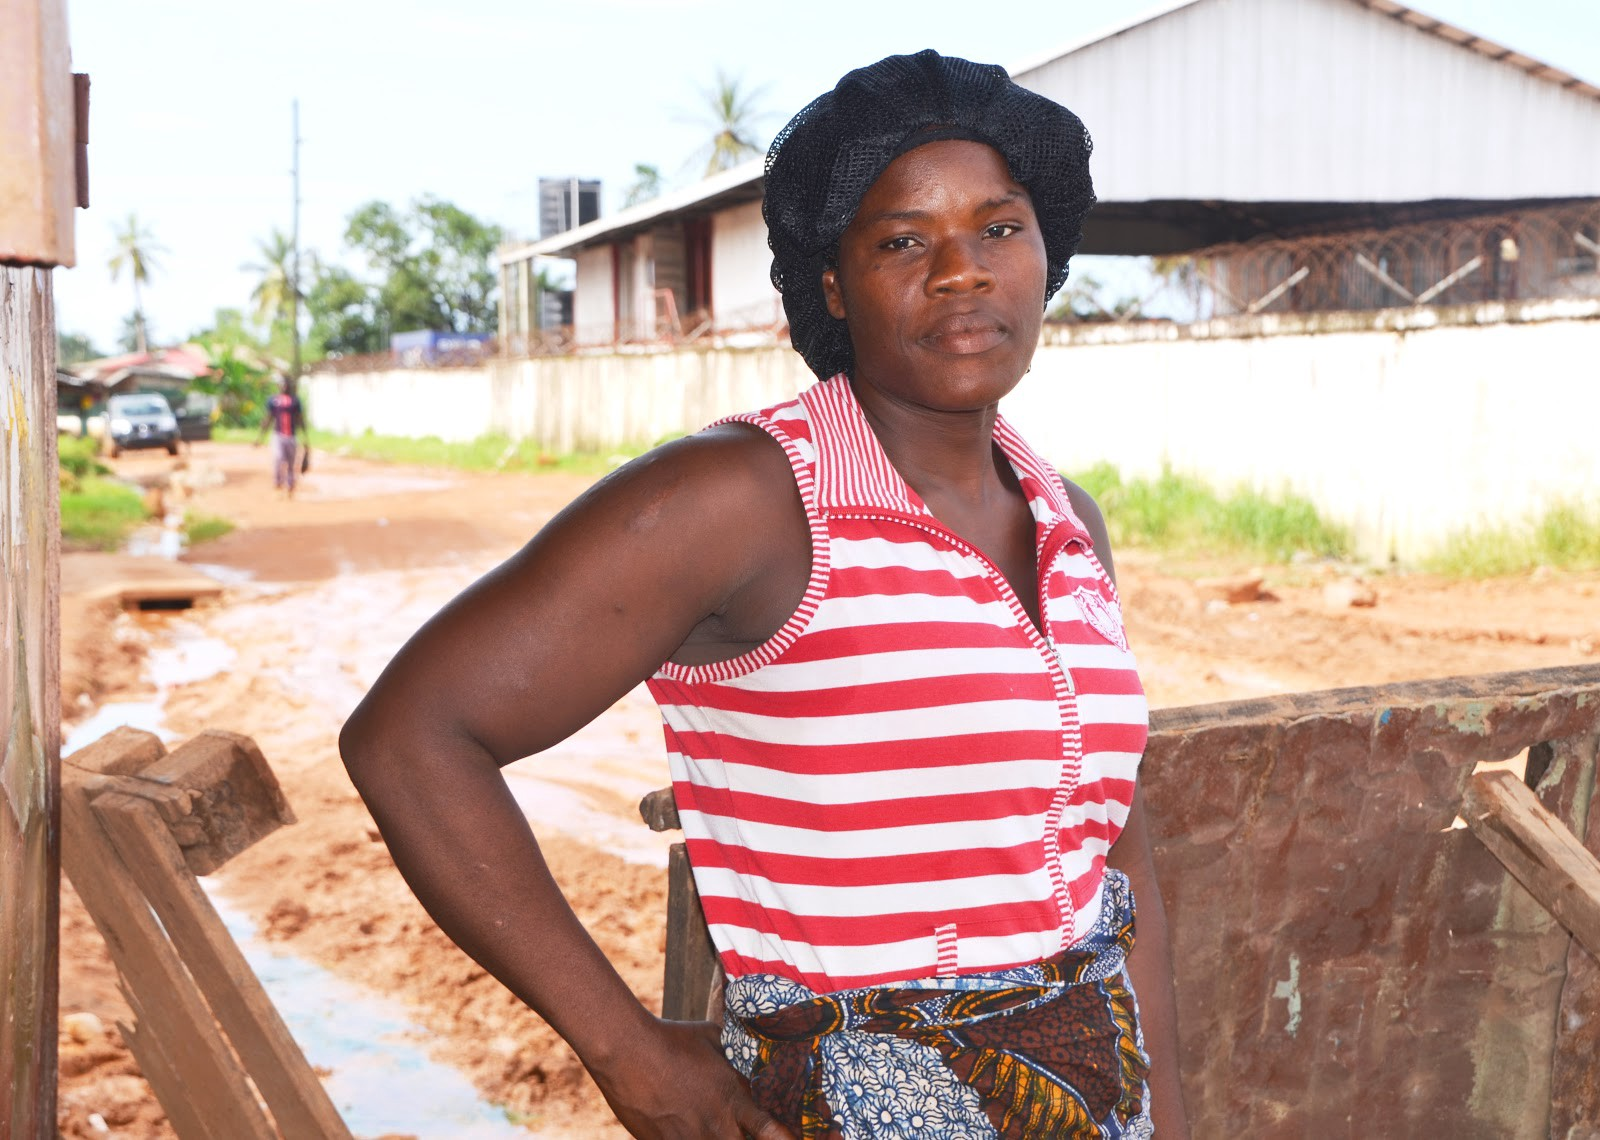 Naomi* was referred to USAID-supported psychosocial services after her husband died of Ebola. She's now a successful water vendor, a business that is helping her support her two small children. / Jessica Benton Cooney, USAID